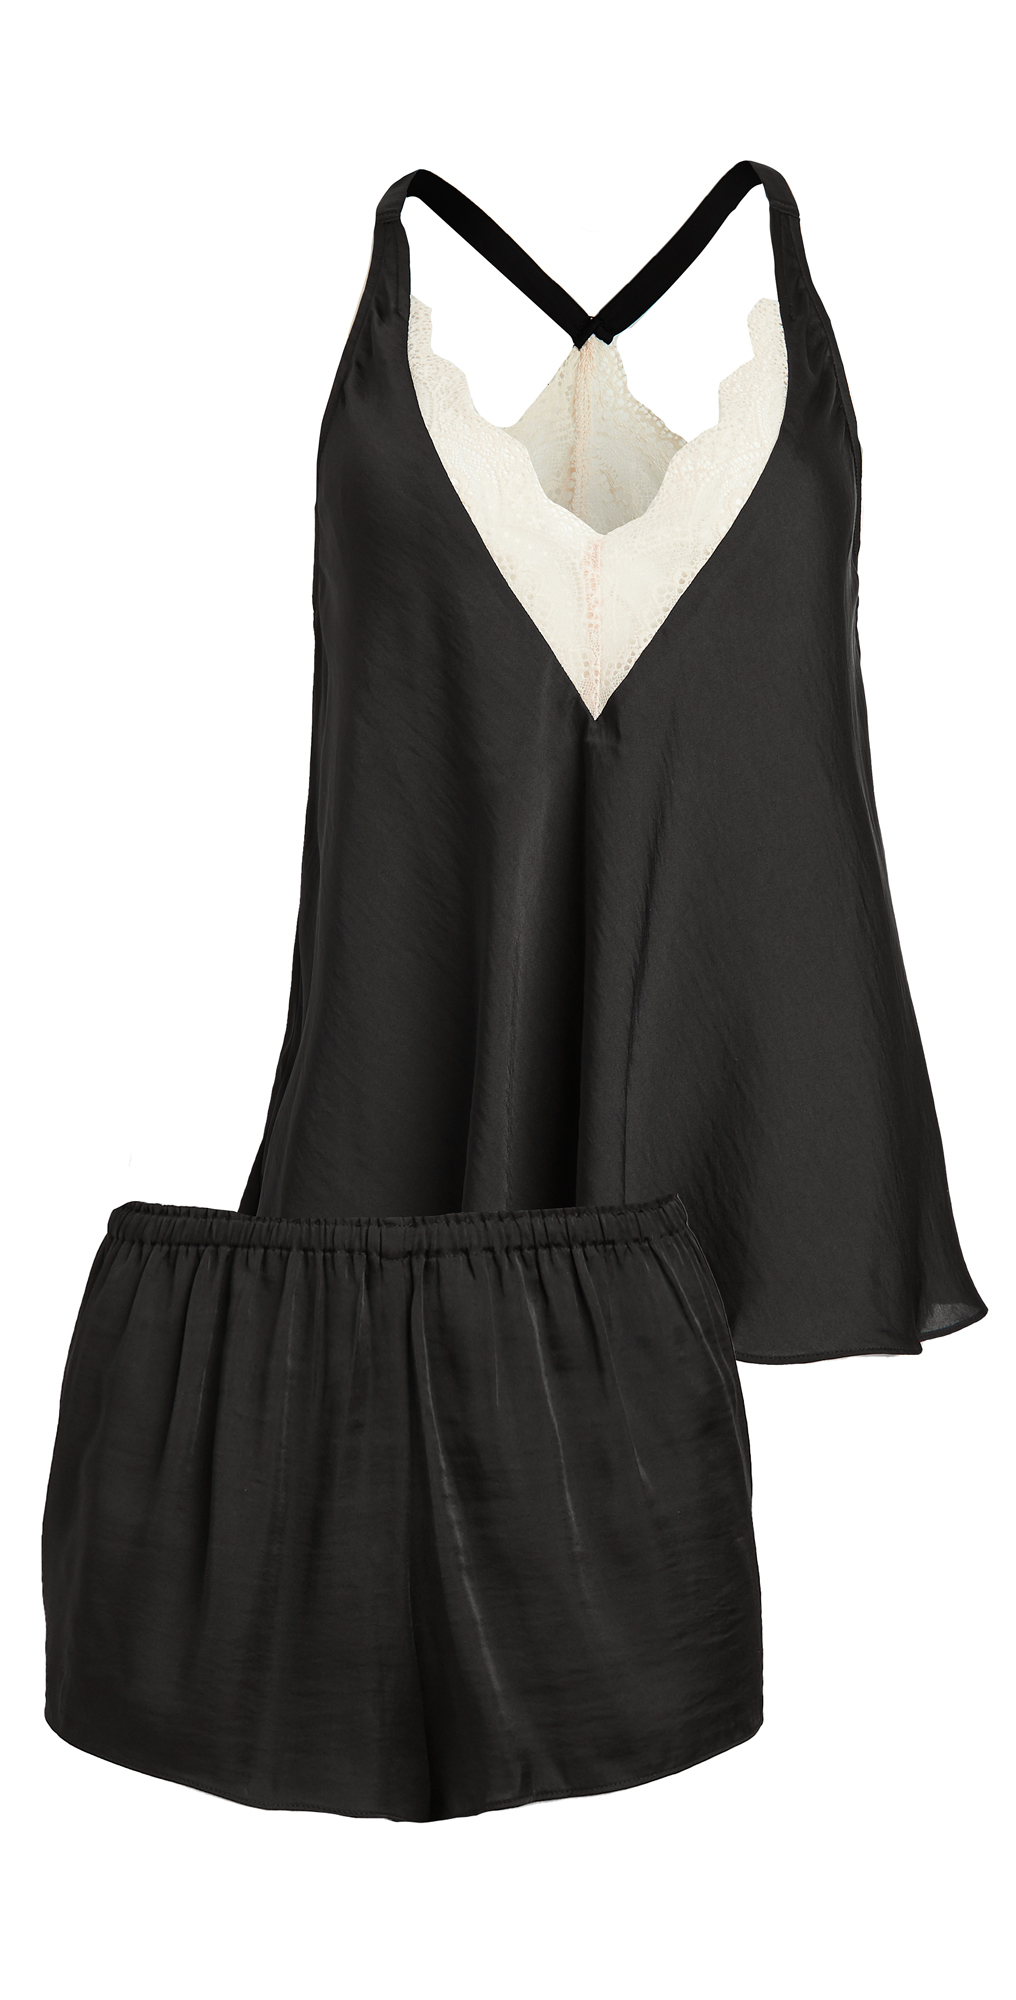 Sestina Silky Island Cami Short Set with Lace